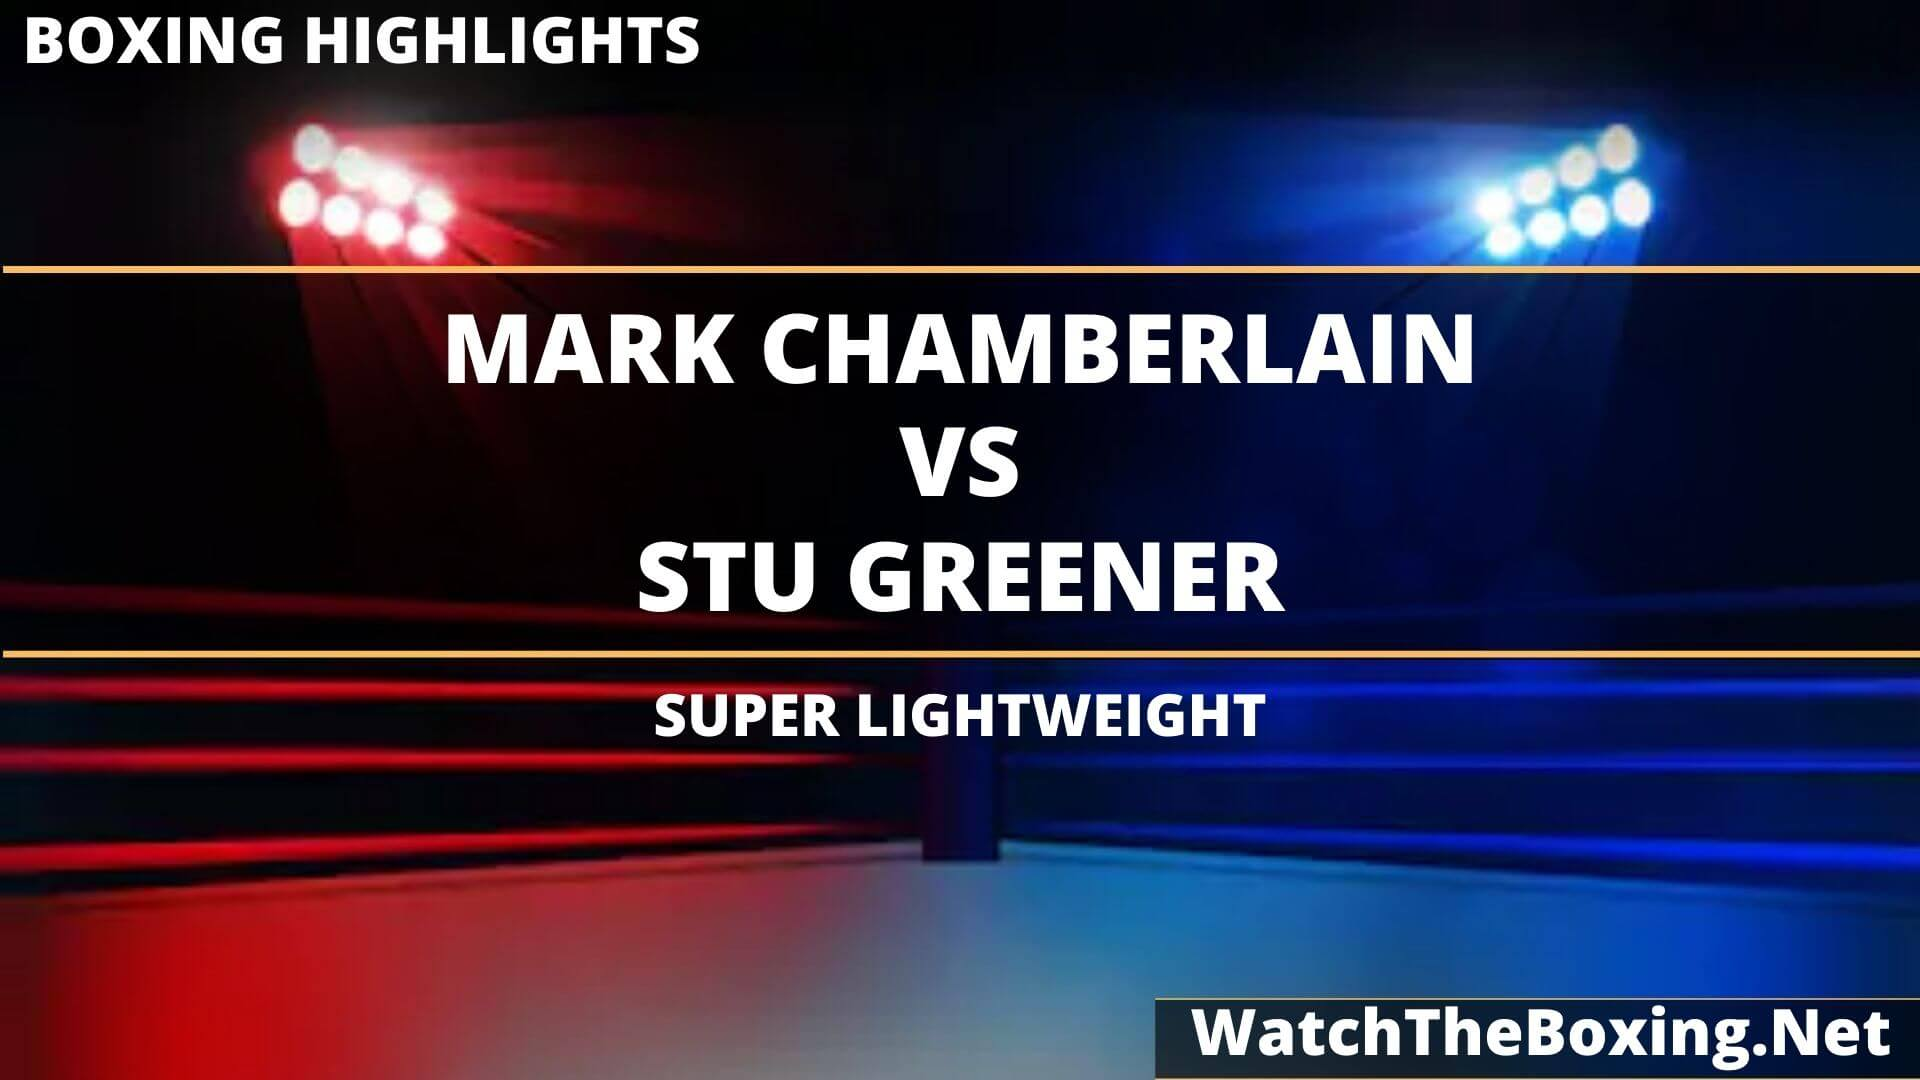 Mark Chamberlain Vs Stu Greener Highlights 2020 Super Lightweight